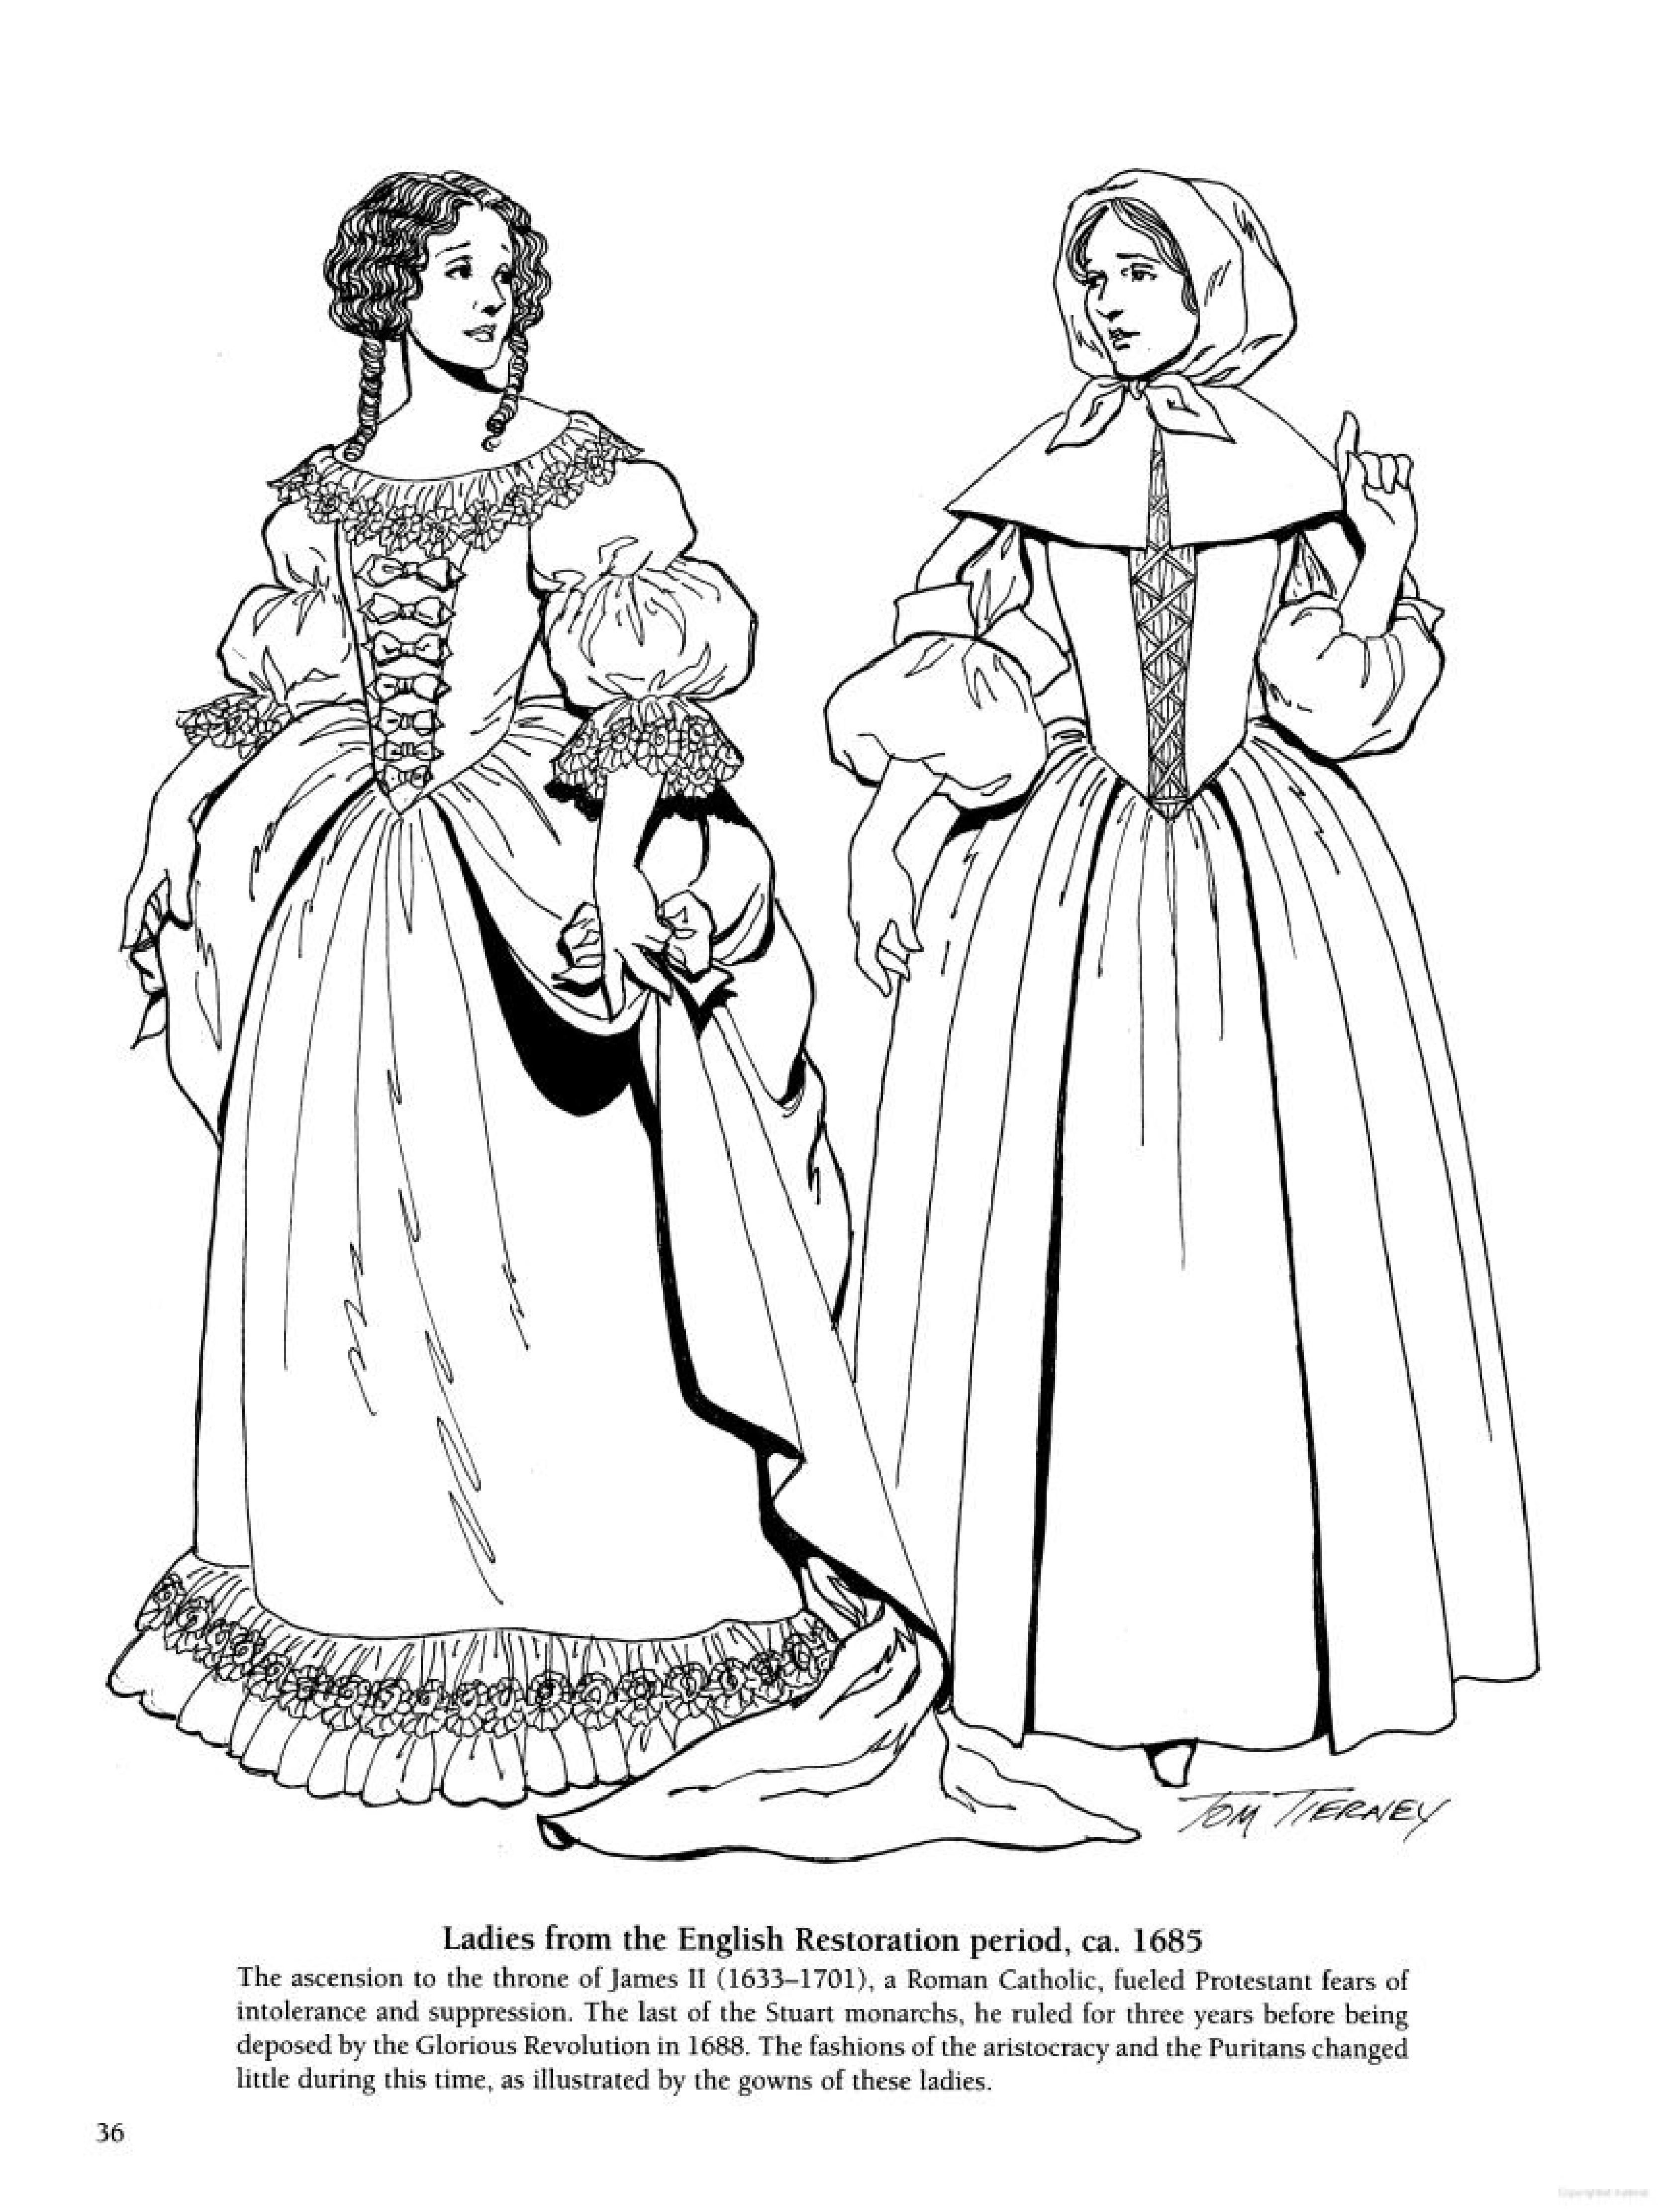 Cavalier And Puritan Fashions Ladies From The English Restoration